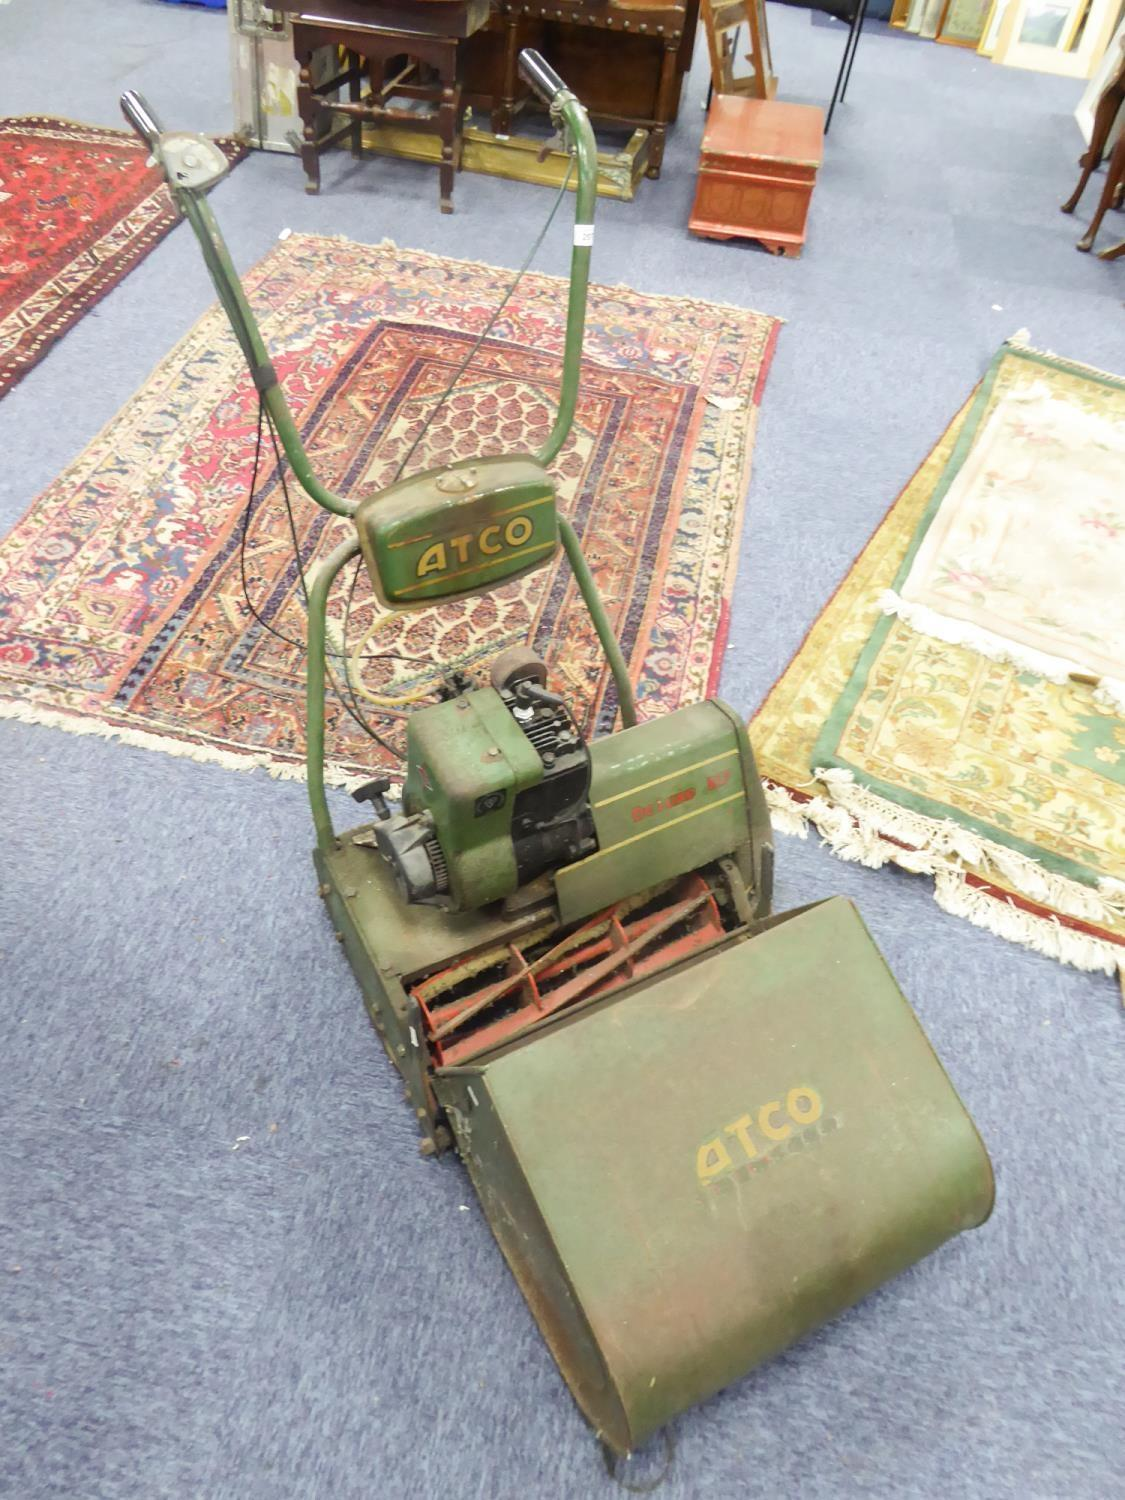 Lot 207 - ATCO DELUXE B17 PETROL DRIVEN LAWN MOWER, with grass box and instruction manual